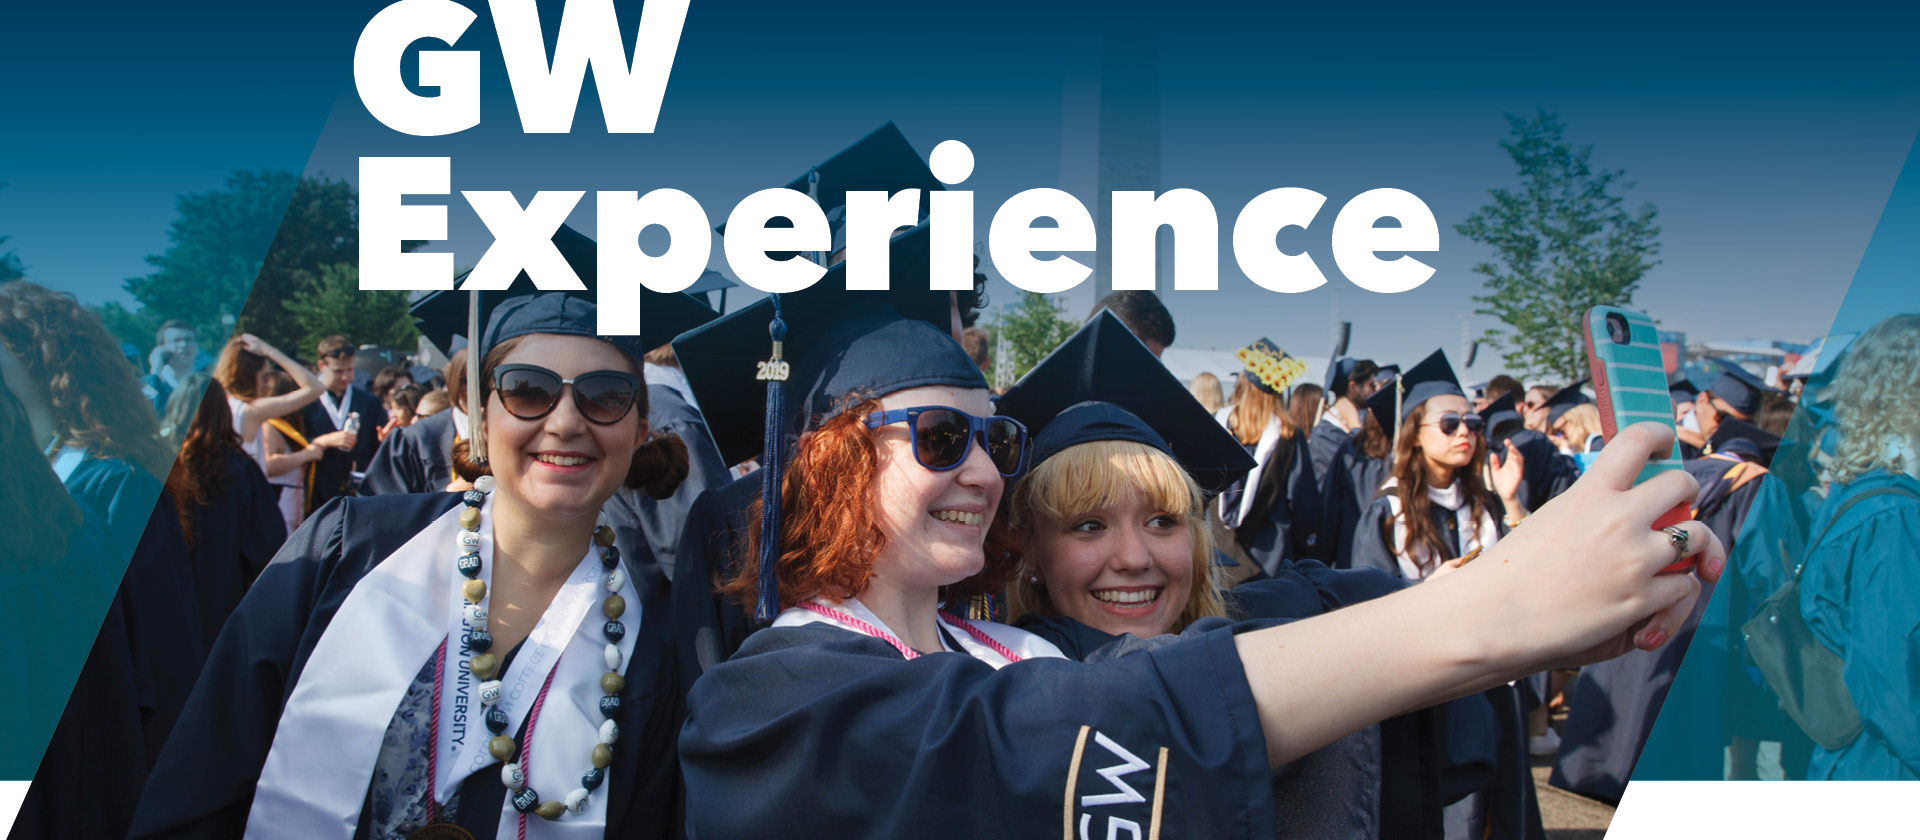 GW Experience; Graduating students at commencement